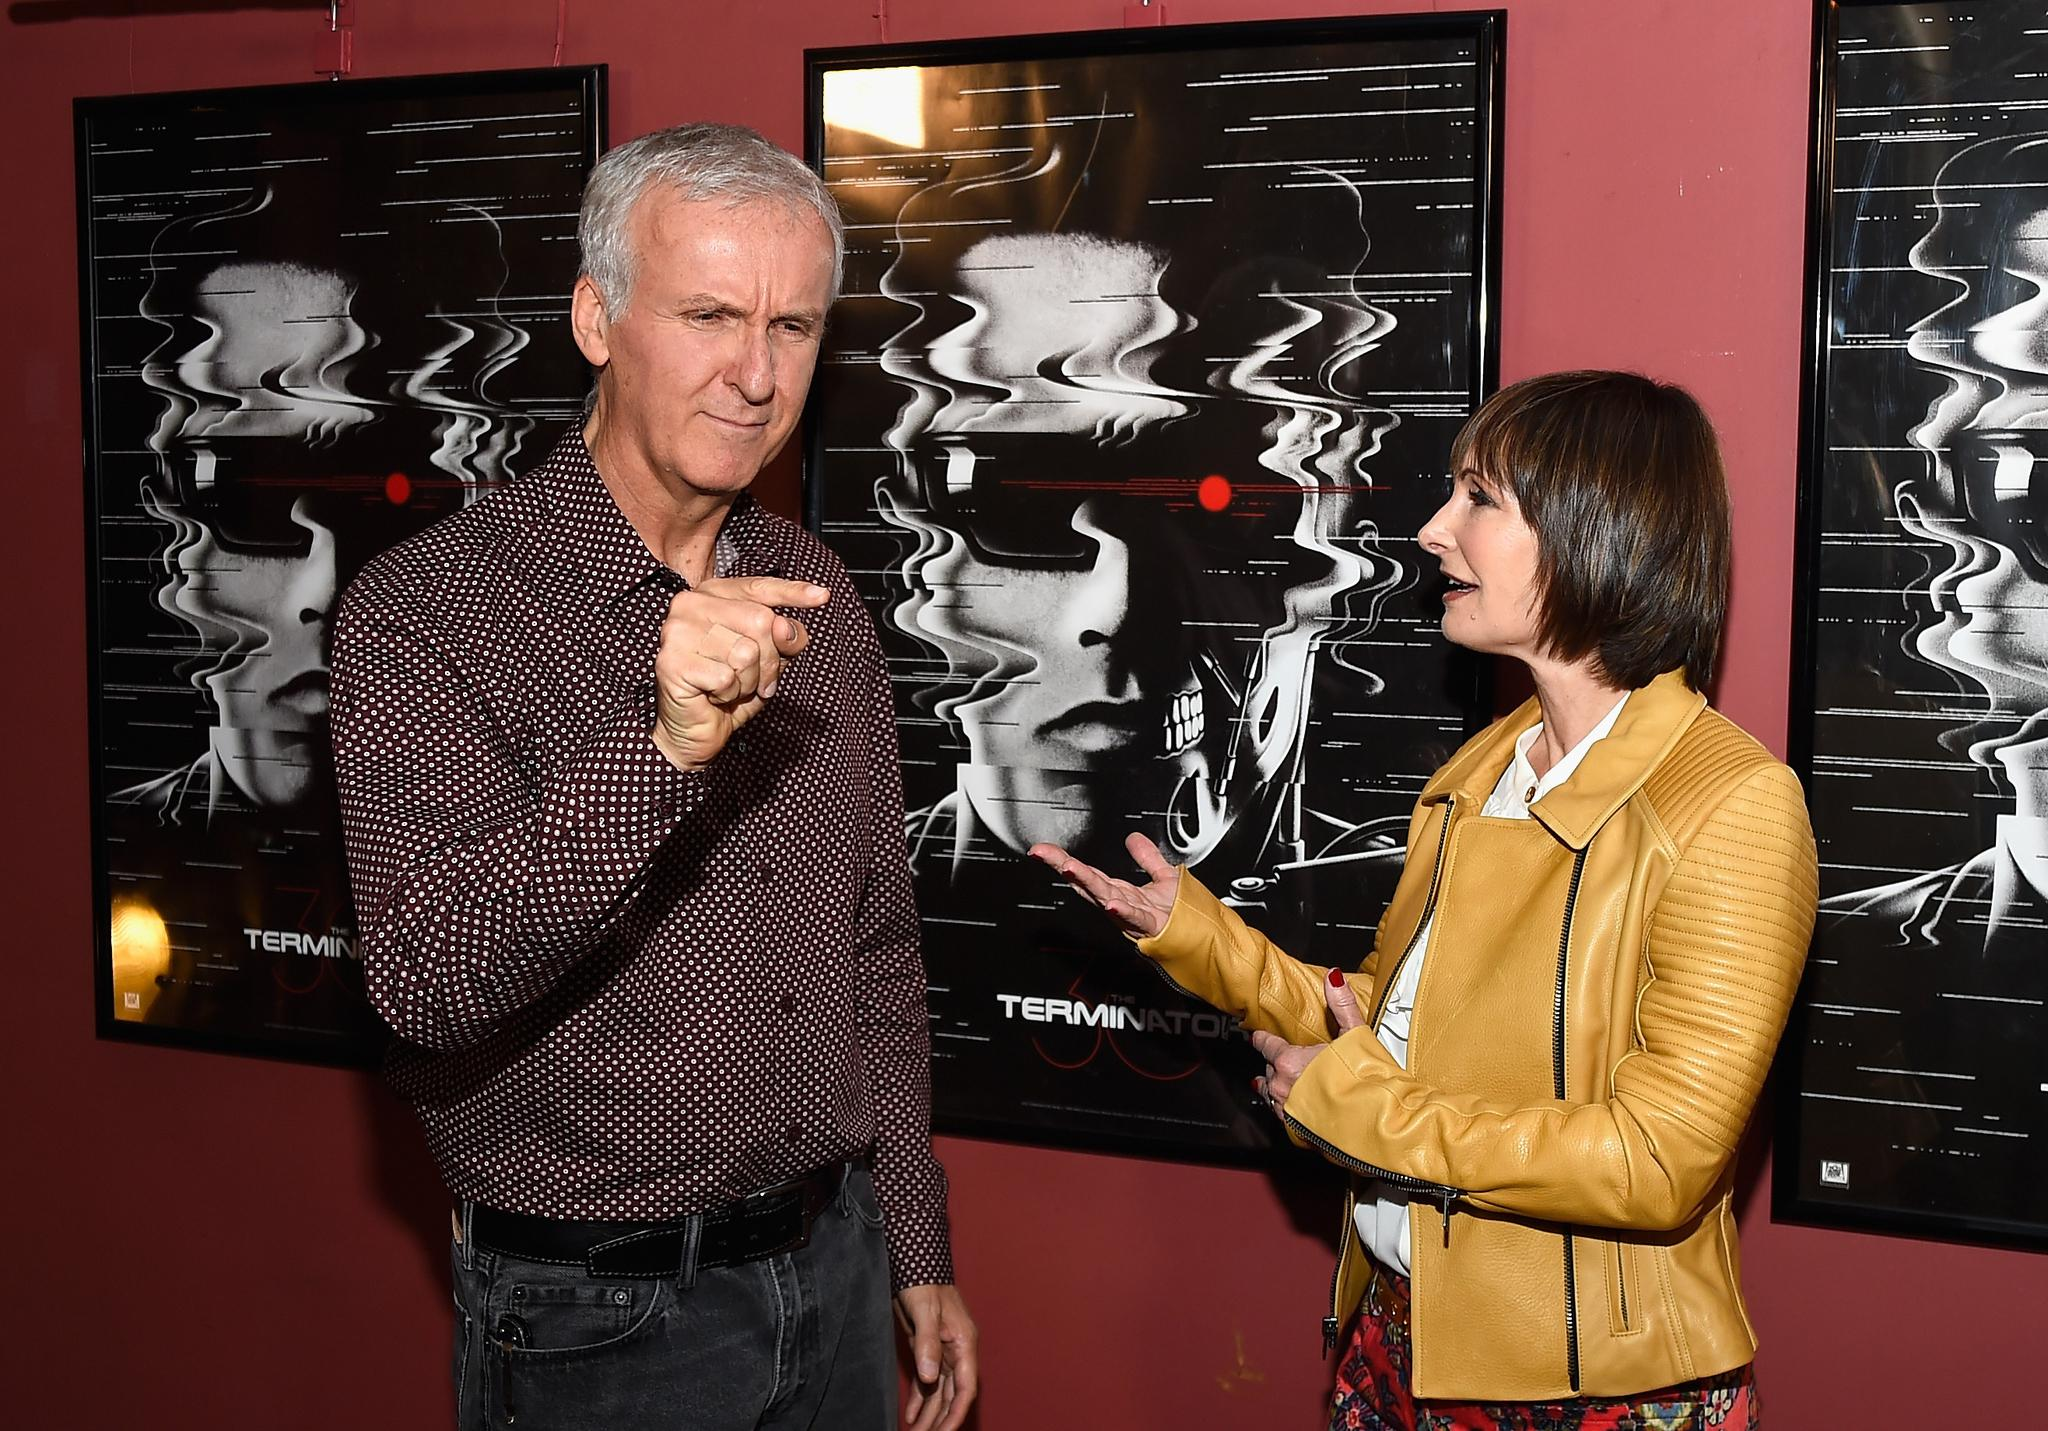 Sophia Stewart + (james-cameron-and-gale-anne-hurd-at-event)